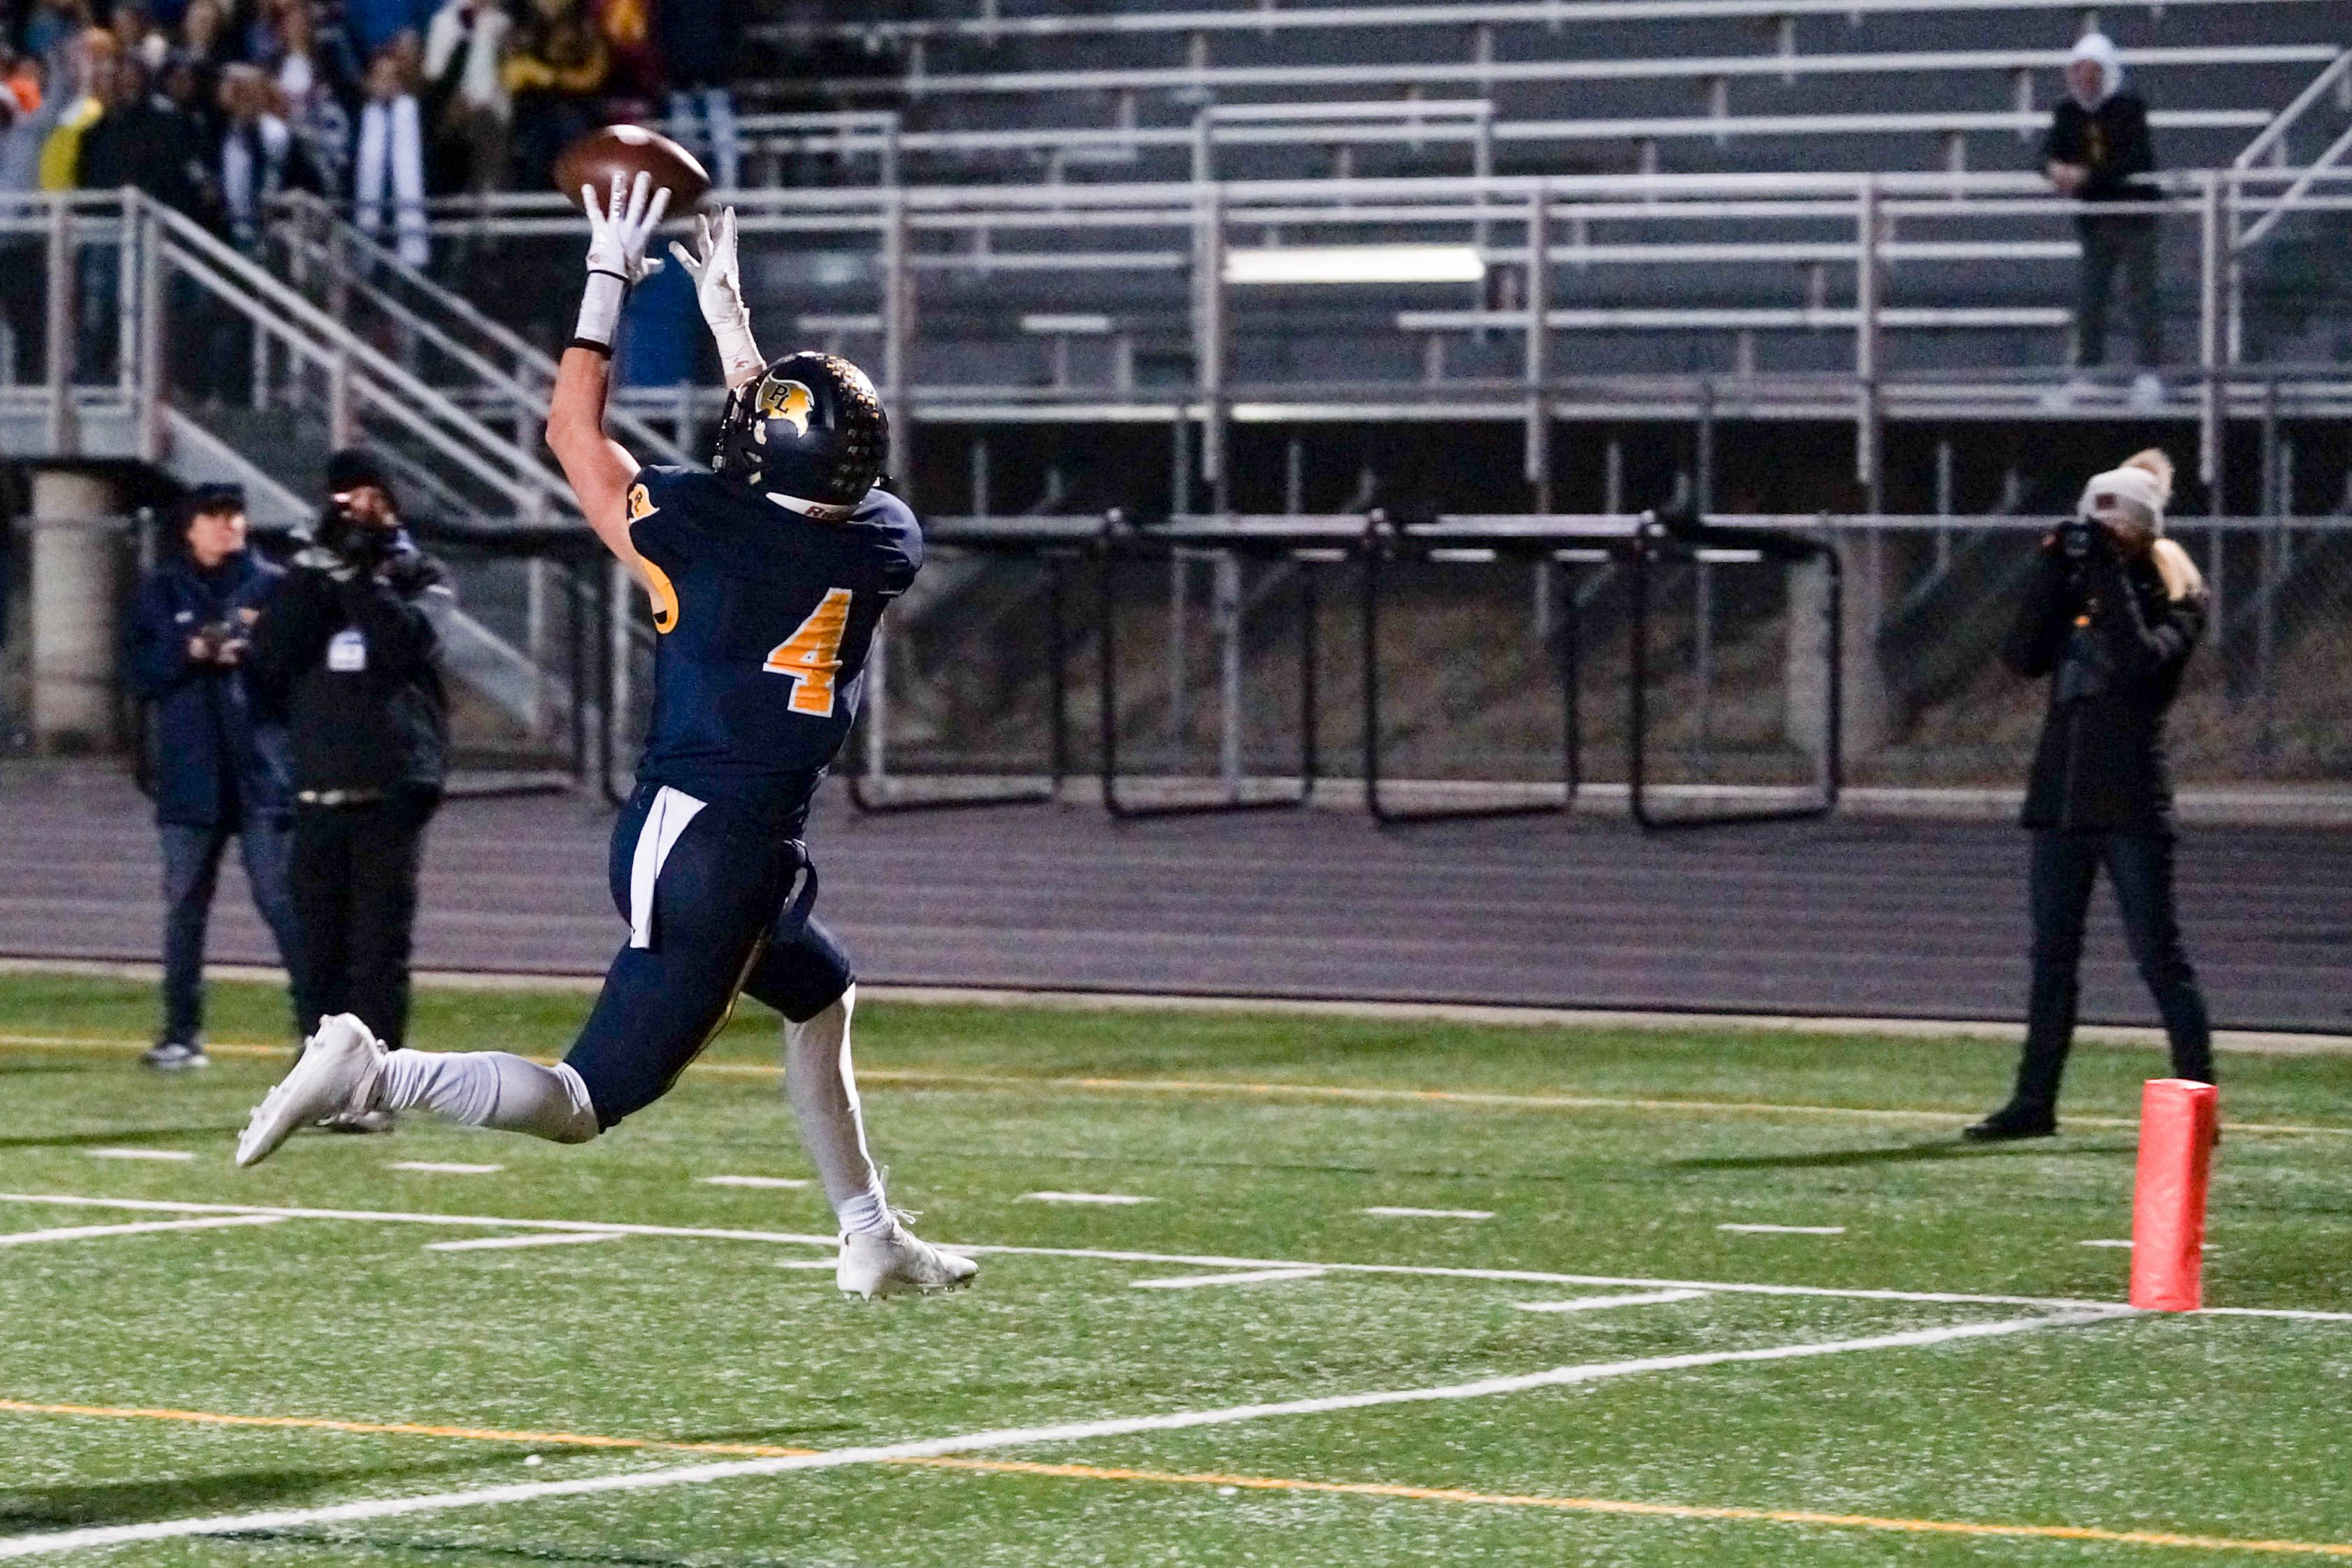 A wide open Austin Gordon hauls in what proved to be the game-winning touchdown in Prior Lake's 20-14 defeat of Cretin-Derham Hall on Friday in the first round of the Class 6A state tournament. Photo by Korey McDermott, SportsEngine